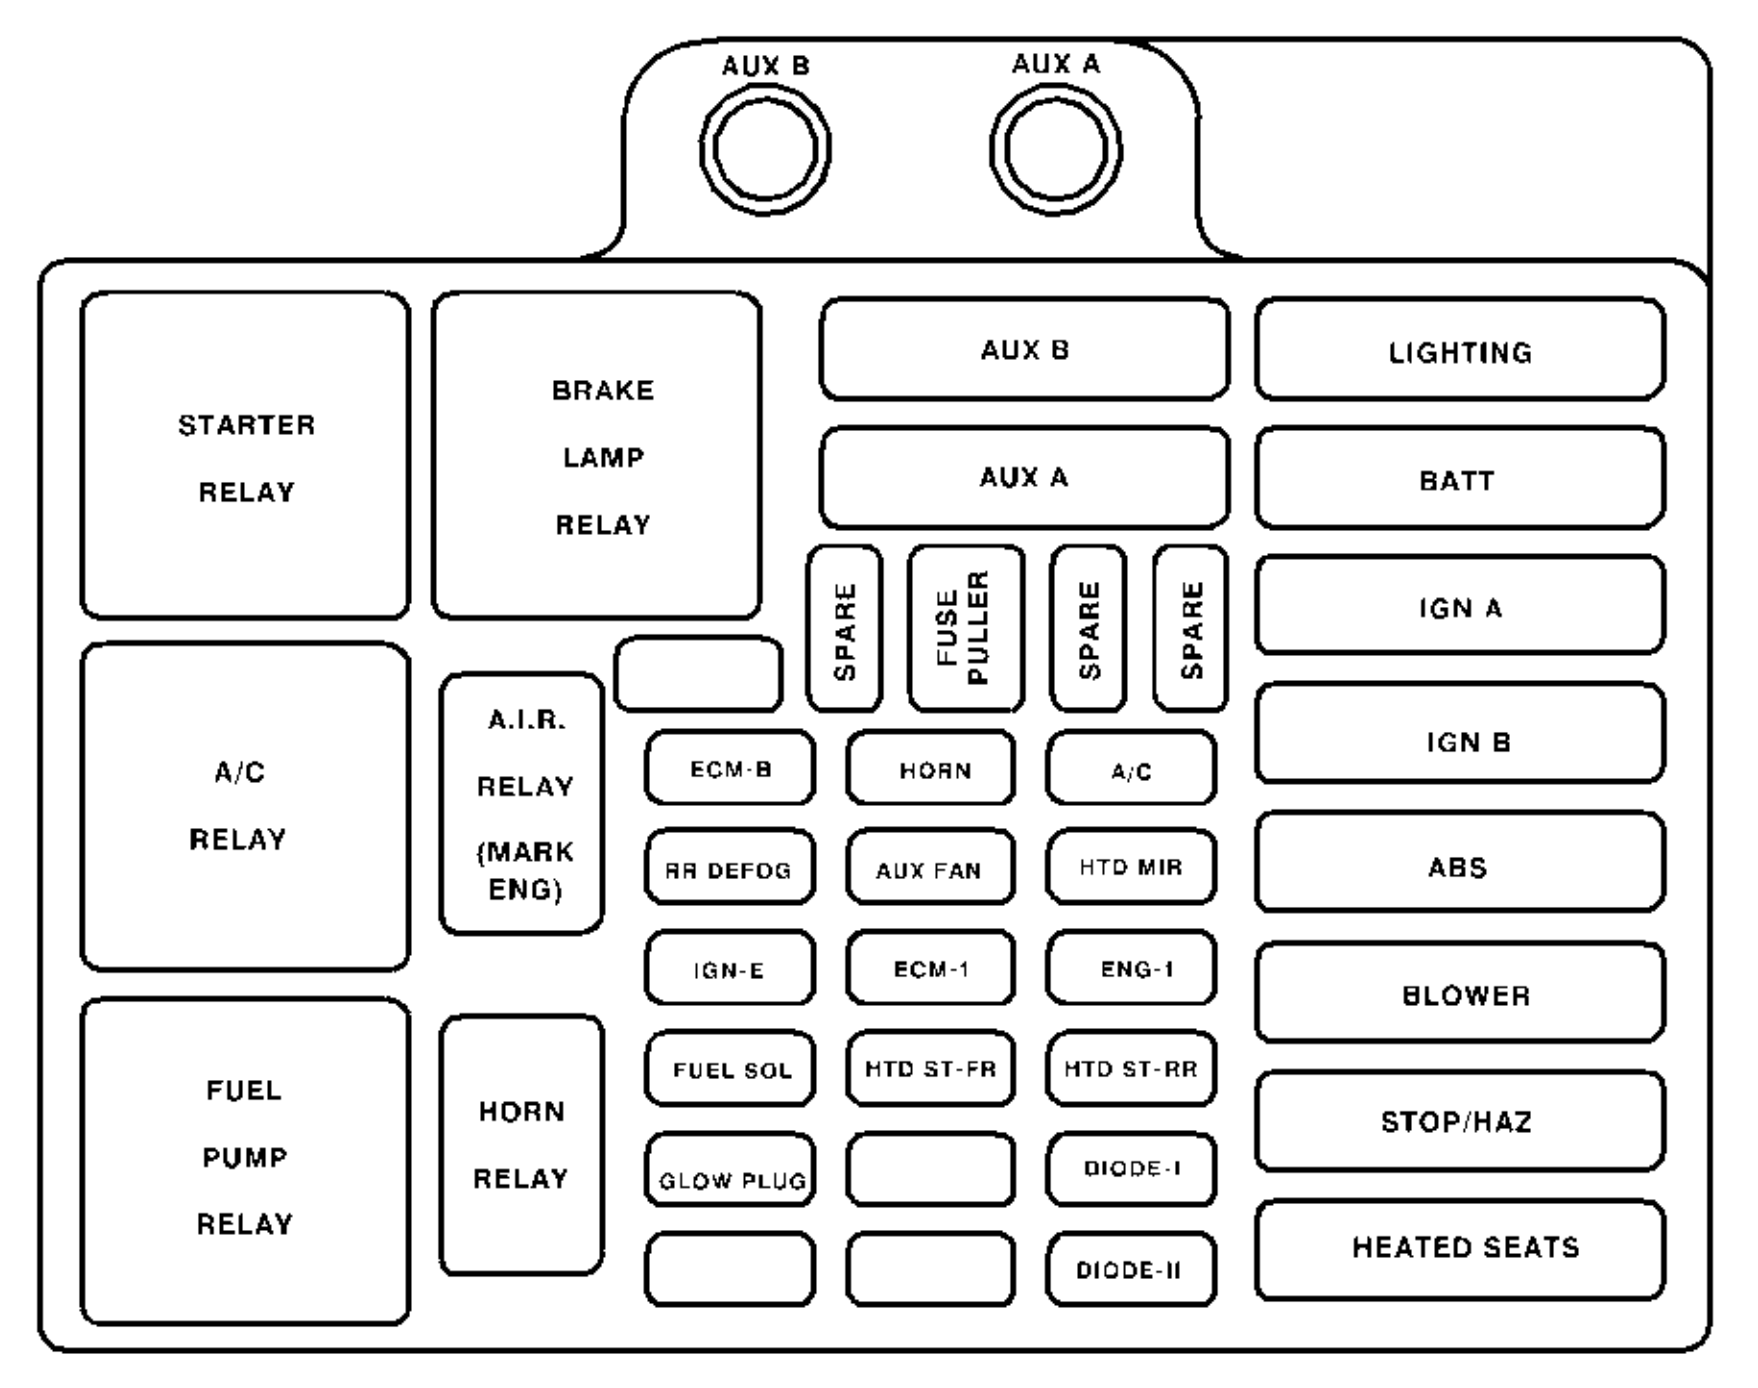 hight resolution of 98 gmc suburban fuse diagram wiring diagram img 2002 tahoe fuse diagram